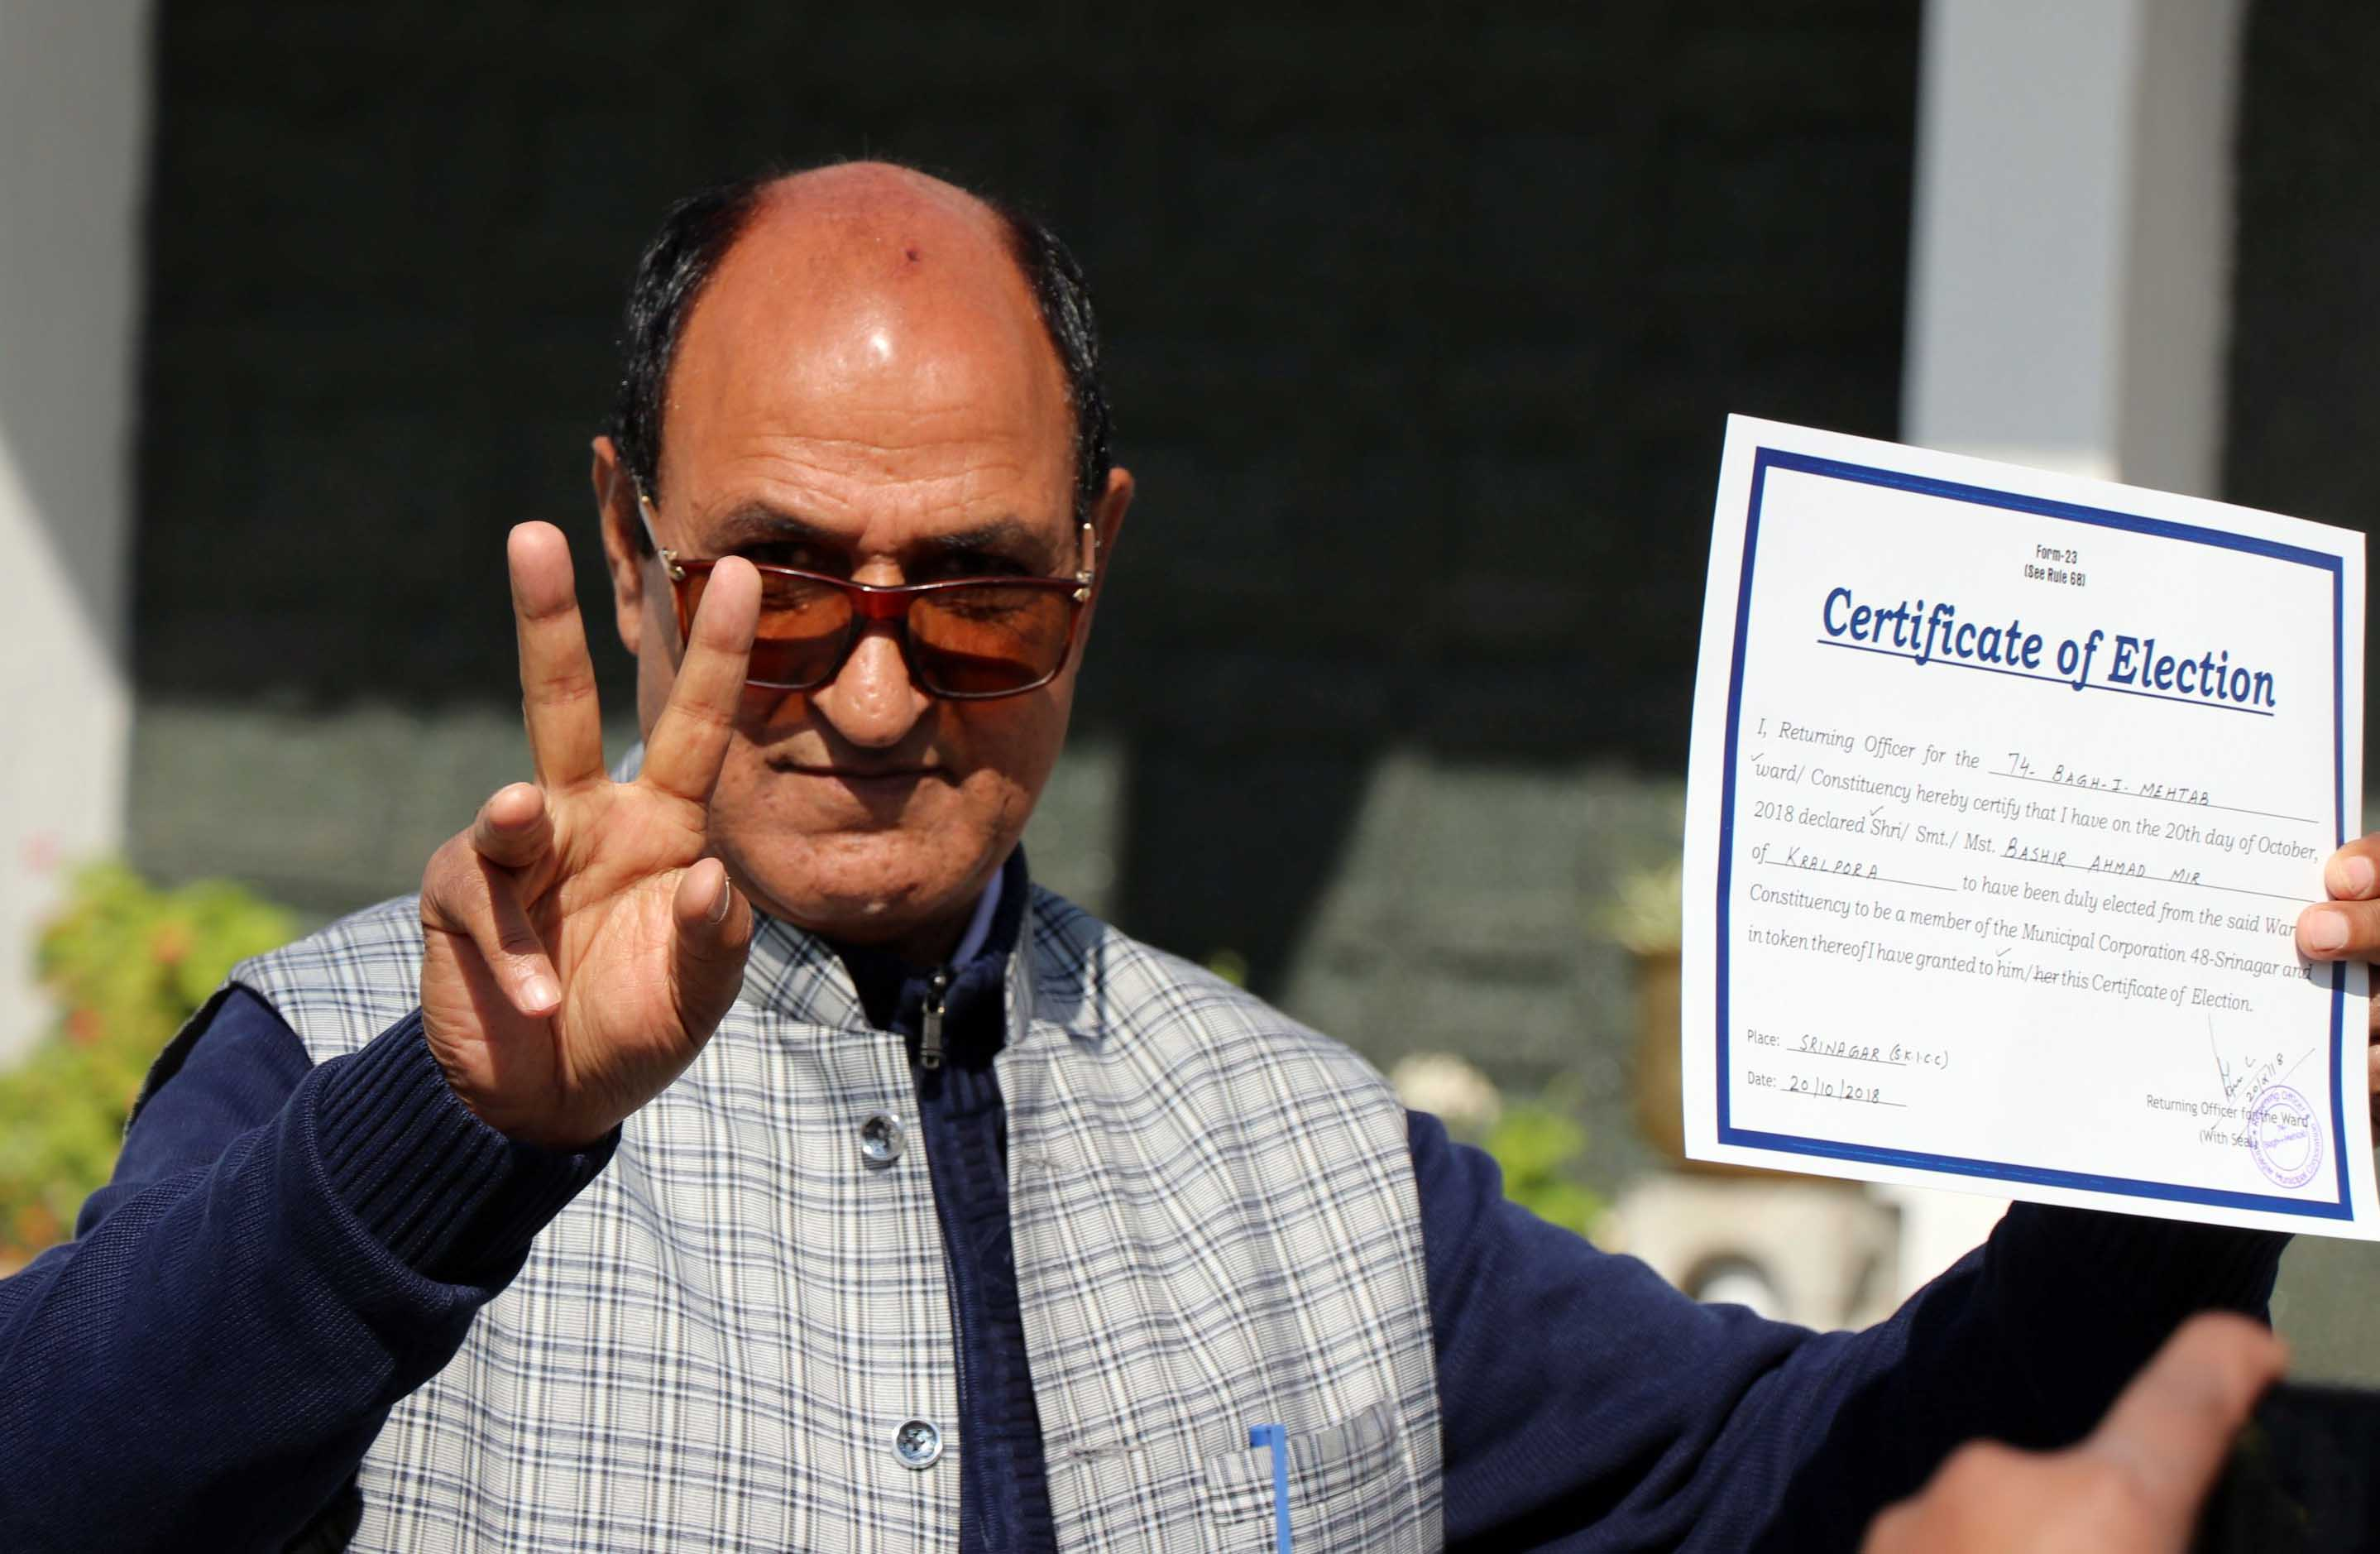 A BJP candidate shows victory sign and certificate after winning municipal election from SMC ward of Sanatnagar area of Srinagar. DH Photo